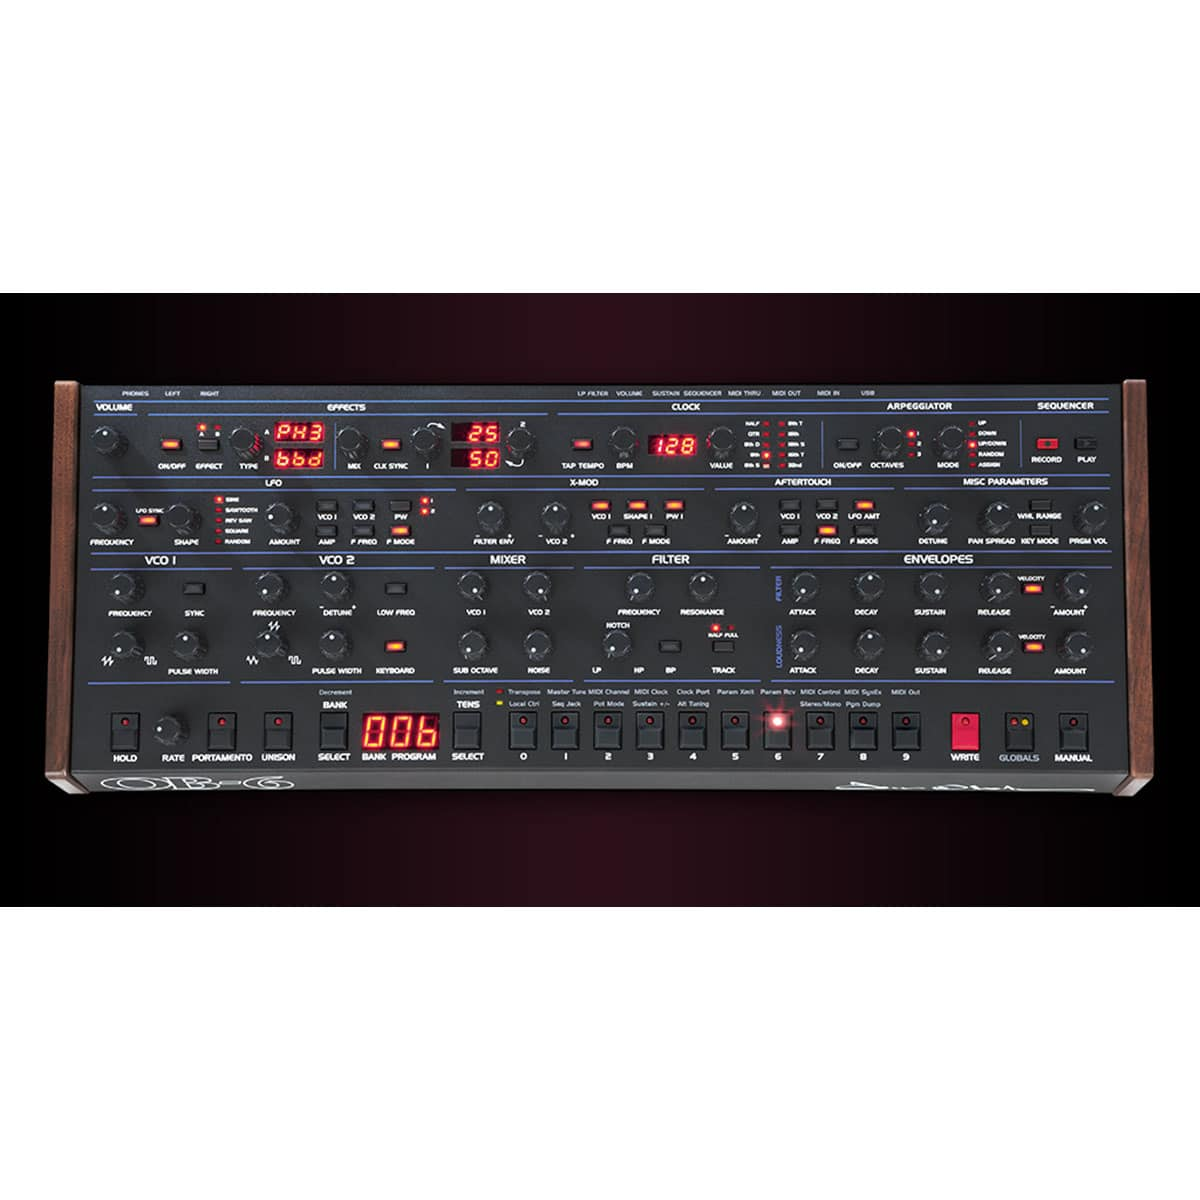 Dave Smith OB 6 Desktop Sintetizzatori e Drum Machine, Sintetizzatori e Tastiere, Synth Desktop Dave Smith OB 6 05